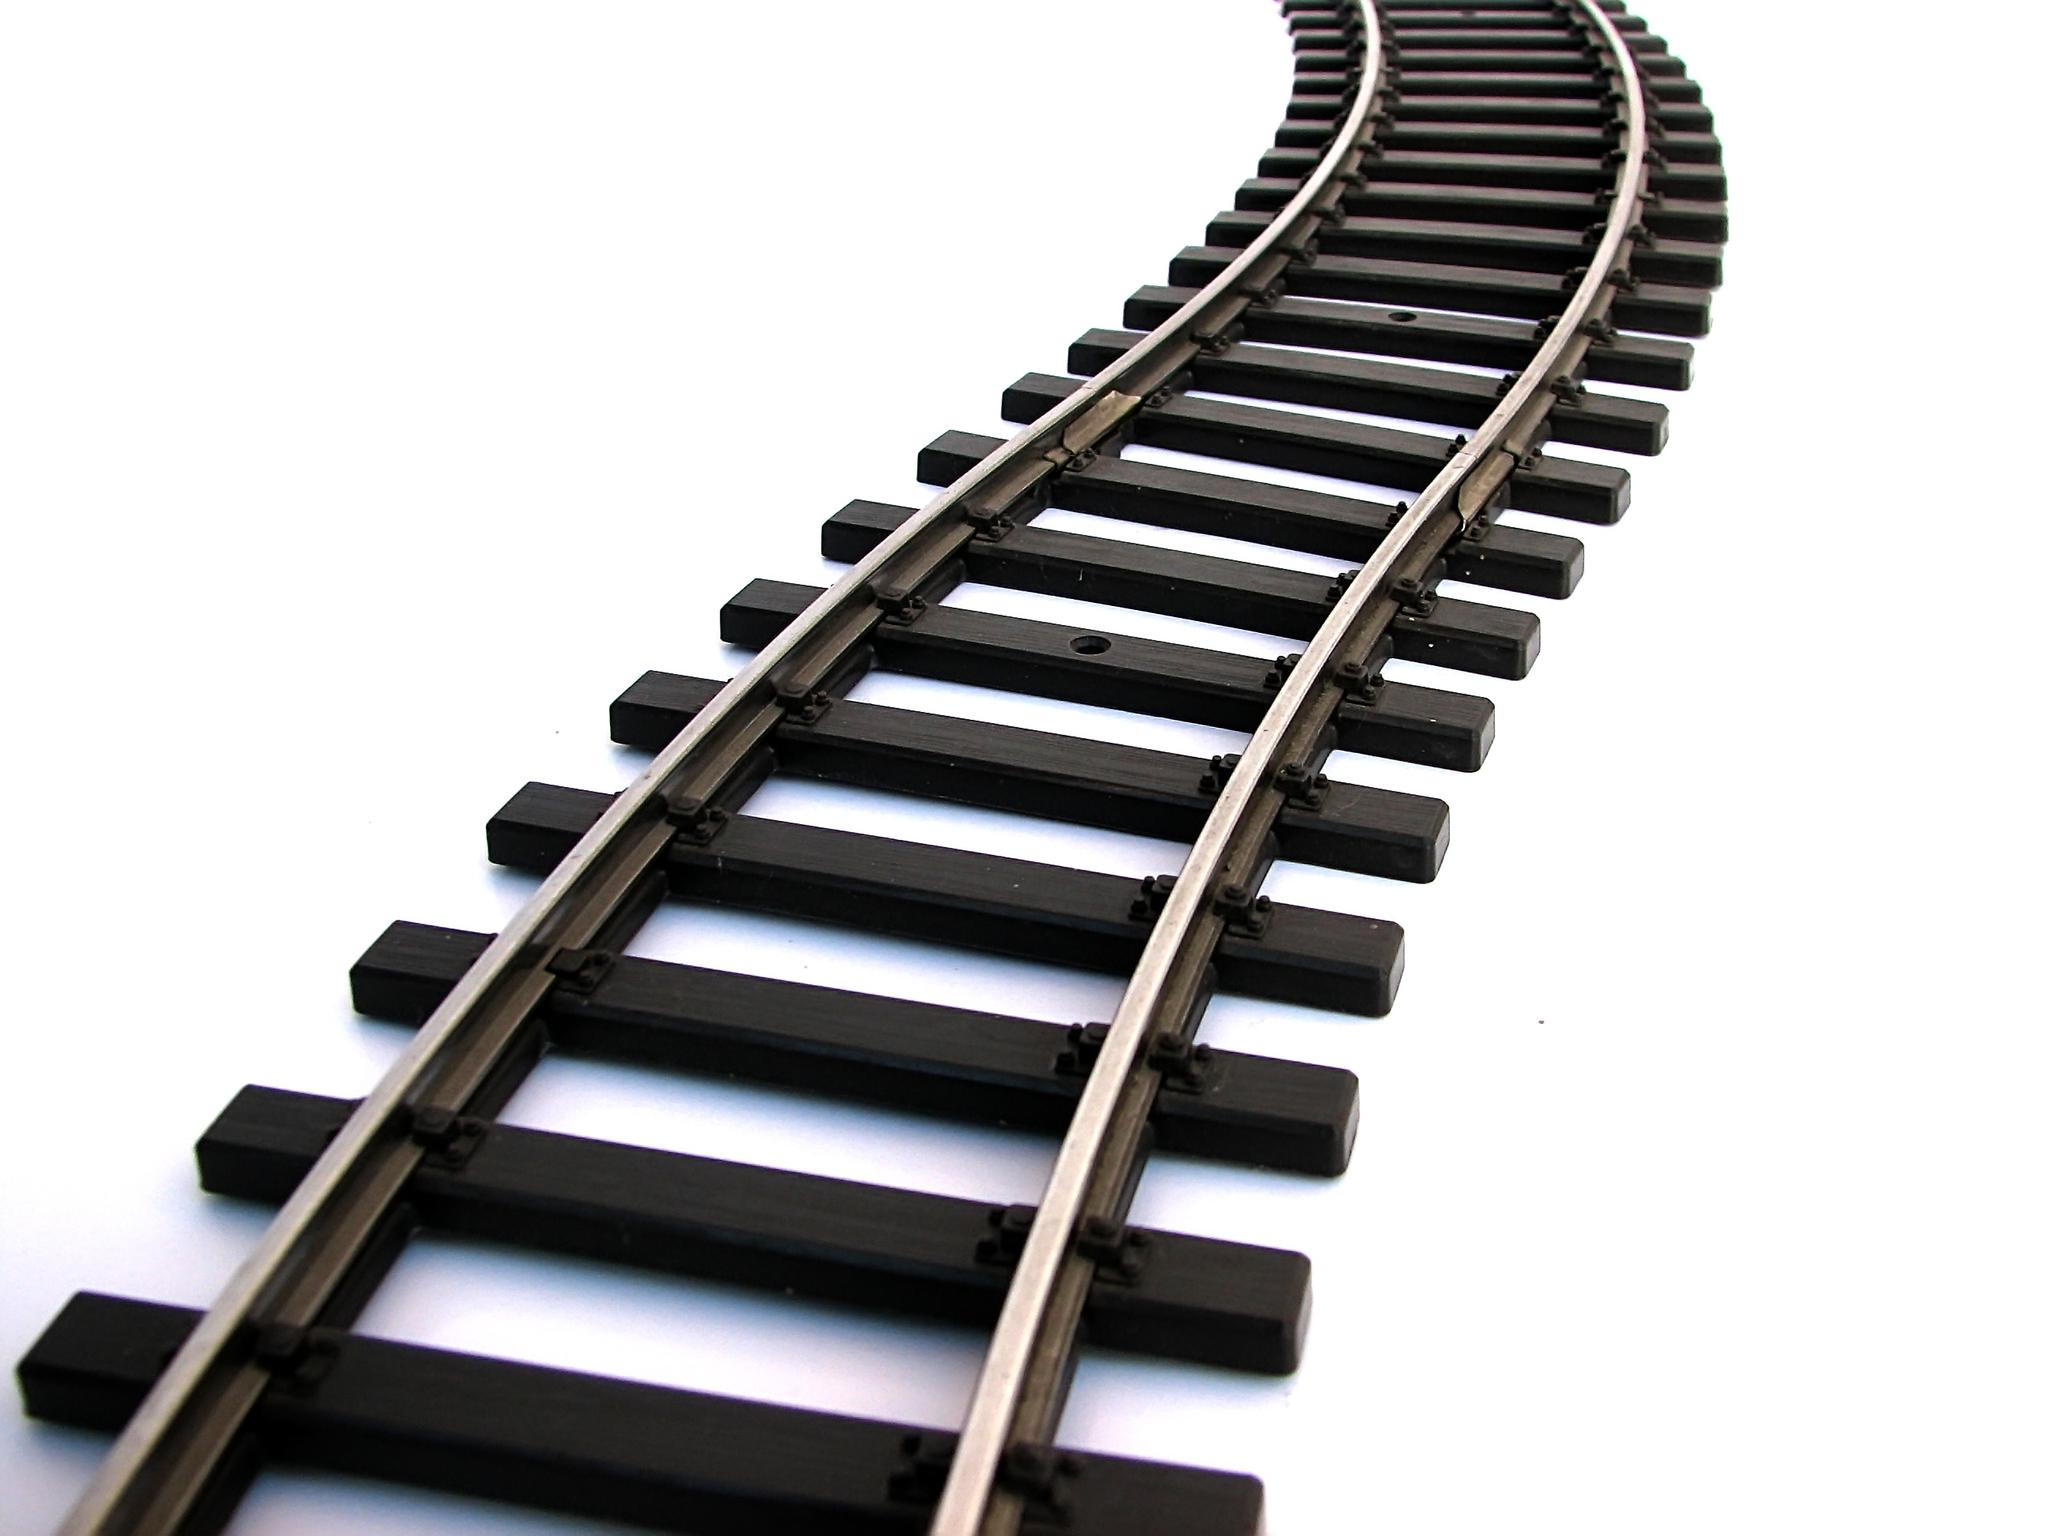 Train clipart curved #2